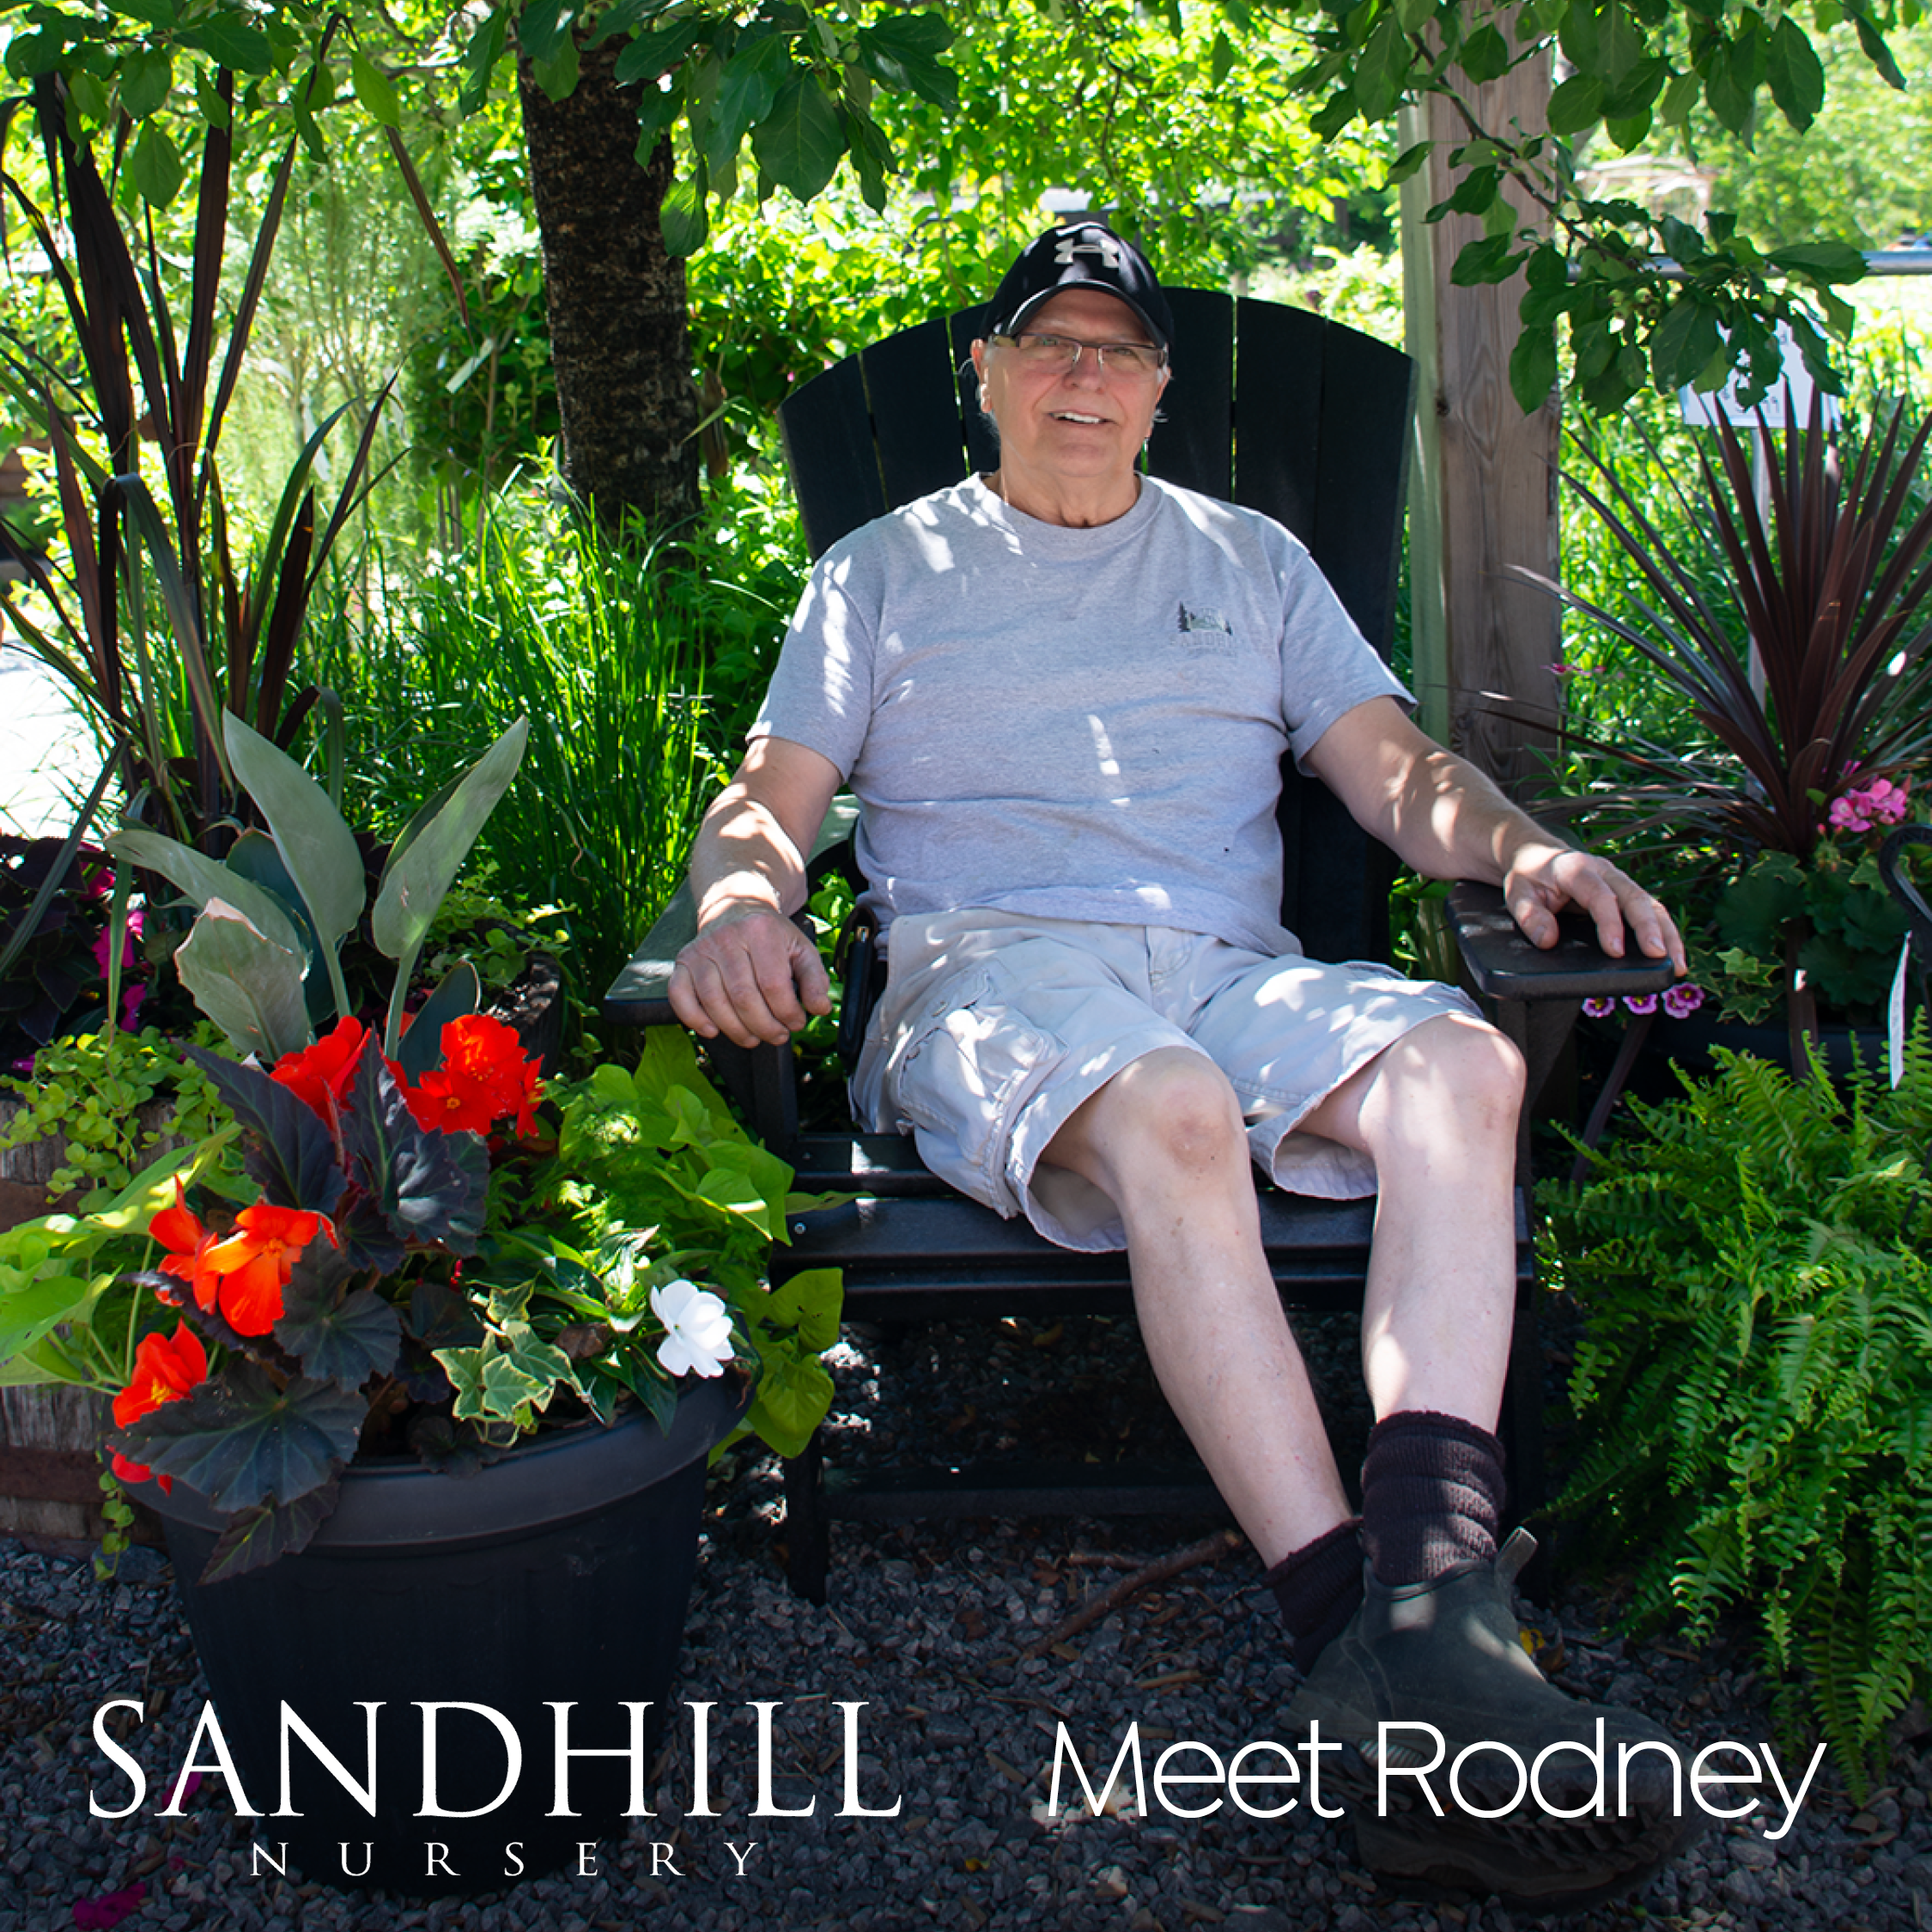 The expertise and enthusiasm of our Sandhill staff members make the experience of coming to the nursery a little extra special. Meet Rodney. If you have a question about growing in the shade, he's your guy.